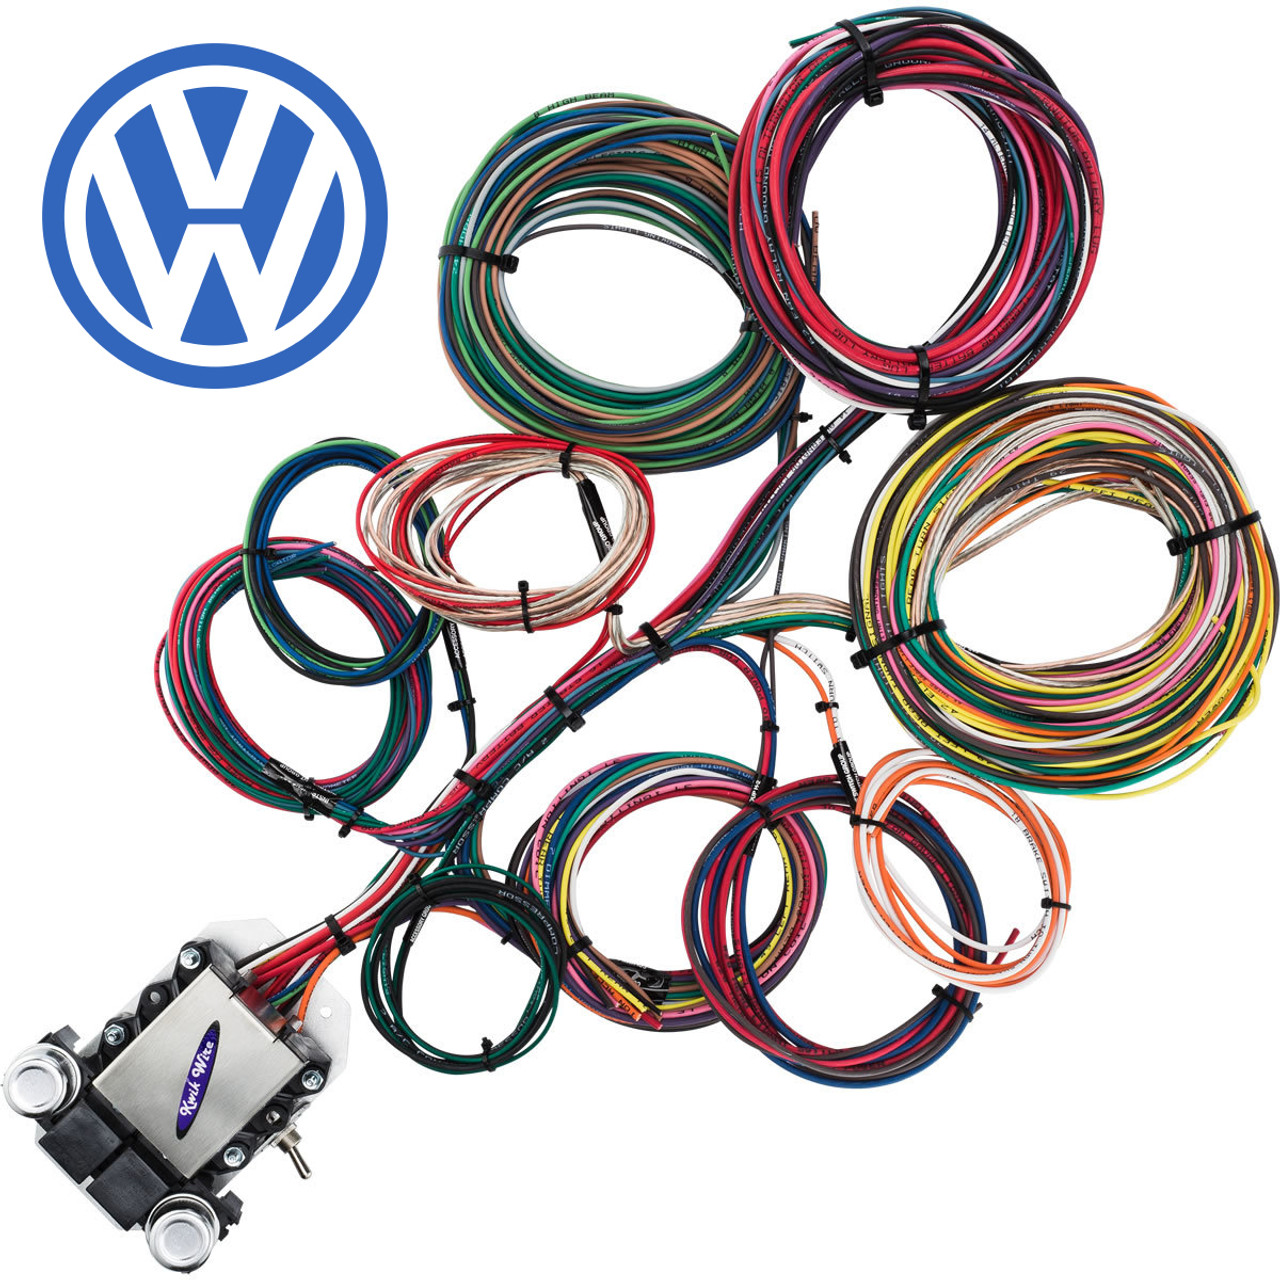 medium resolution of 14 circuit vw wire harness kwikwire com electrify your ridevw wire harness 10